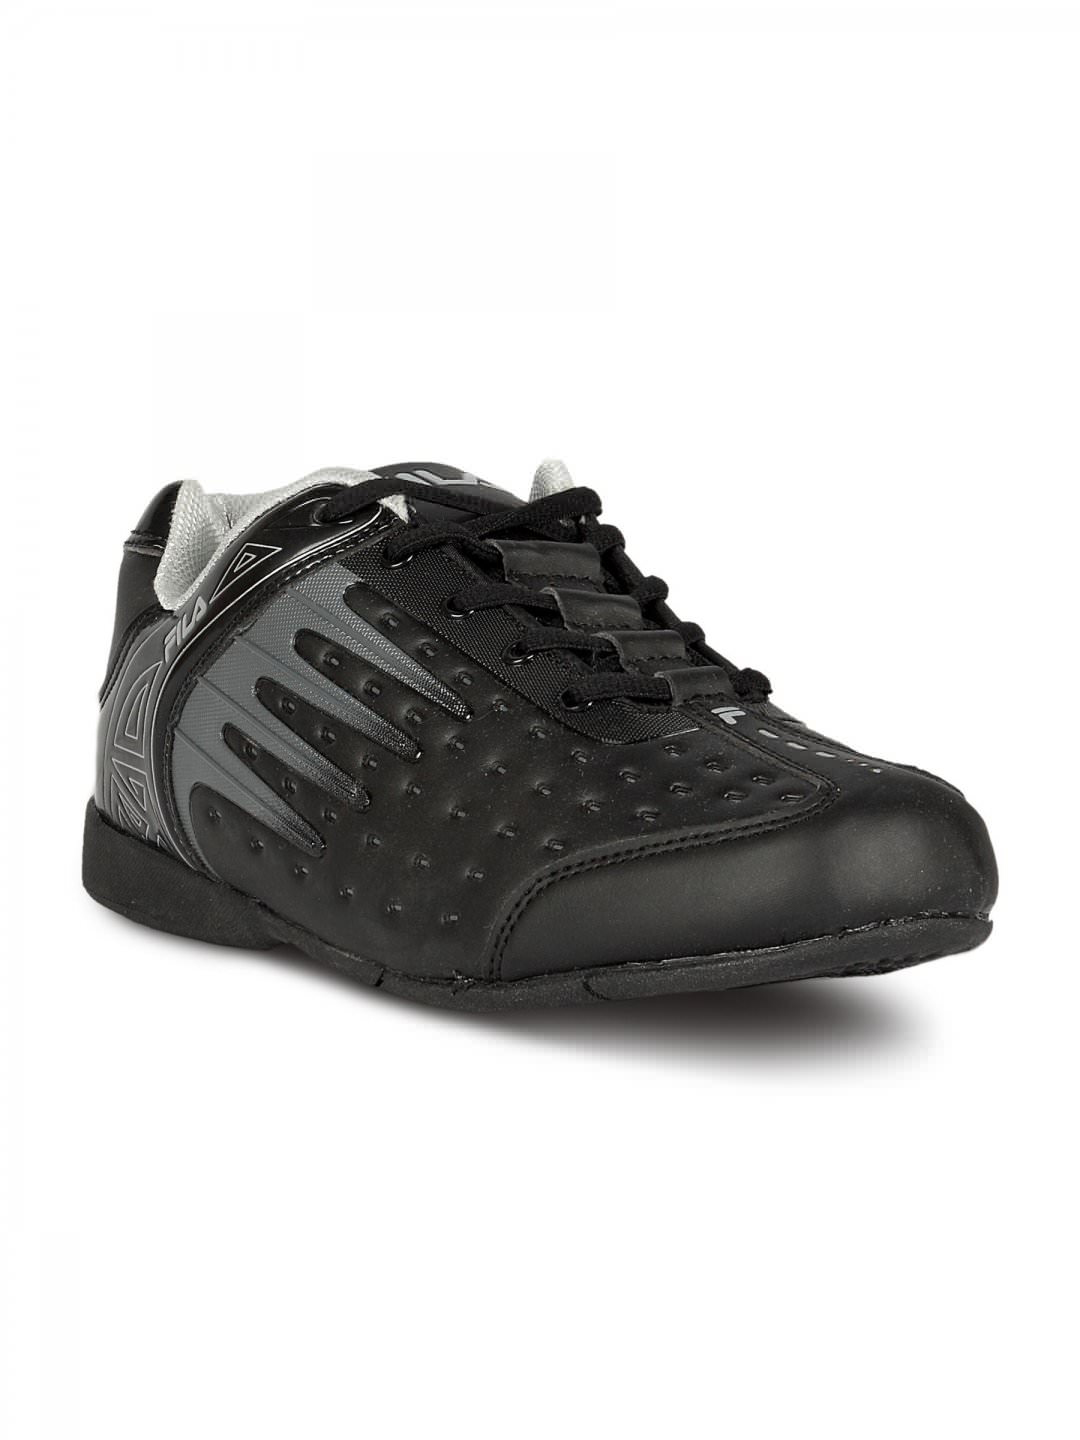 Fila Men's Batec Black Shoe